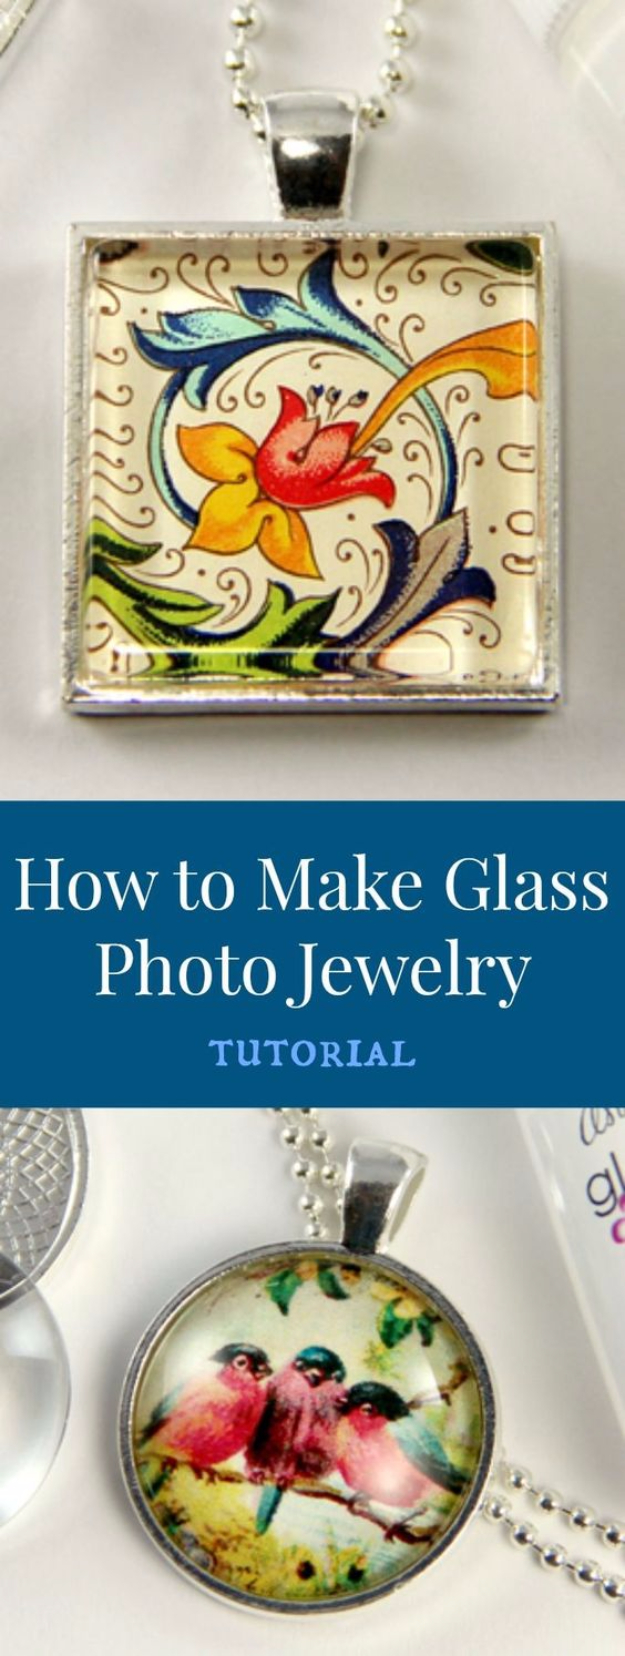 DIY Photo Crafts and Projects for Pictures - Glass Photo Jewelry - Handmade Picture Frame Ideas and Step by Step Tutorials for Making Cool DIY Gifts and Home Decor - Cheap and Easy Photo Frames, Creative Ways to Frame and Mount Photos on Canvas and Display Them In Your House http://diyjoy.com/handmade-photo-crafts